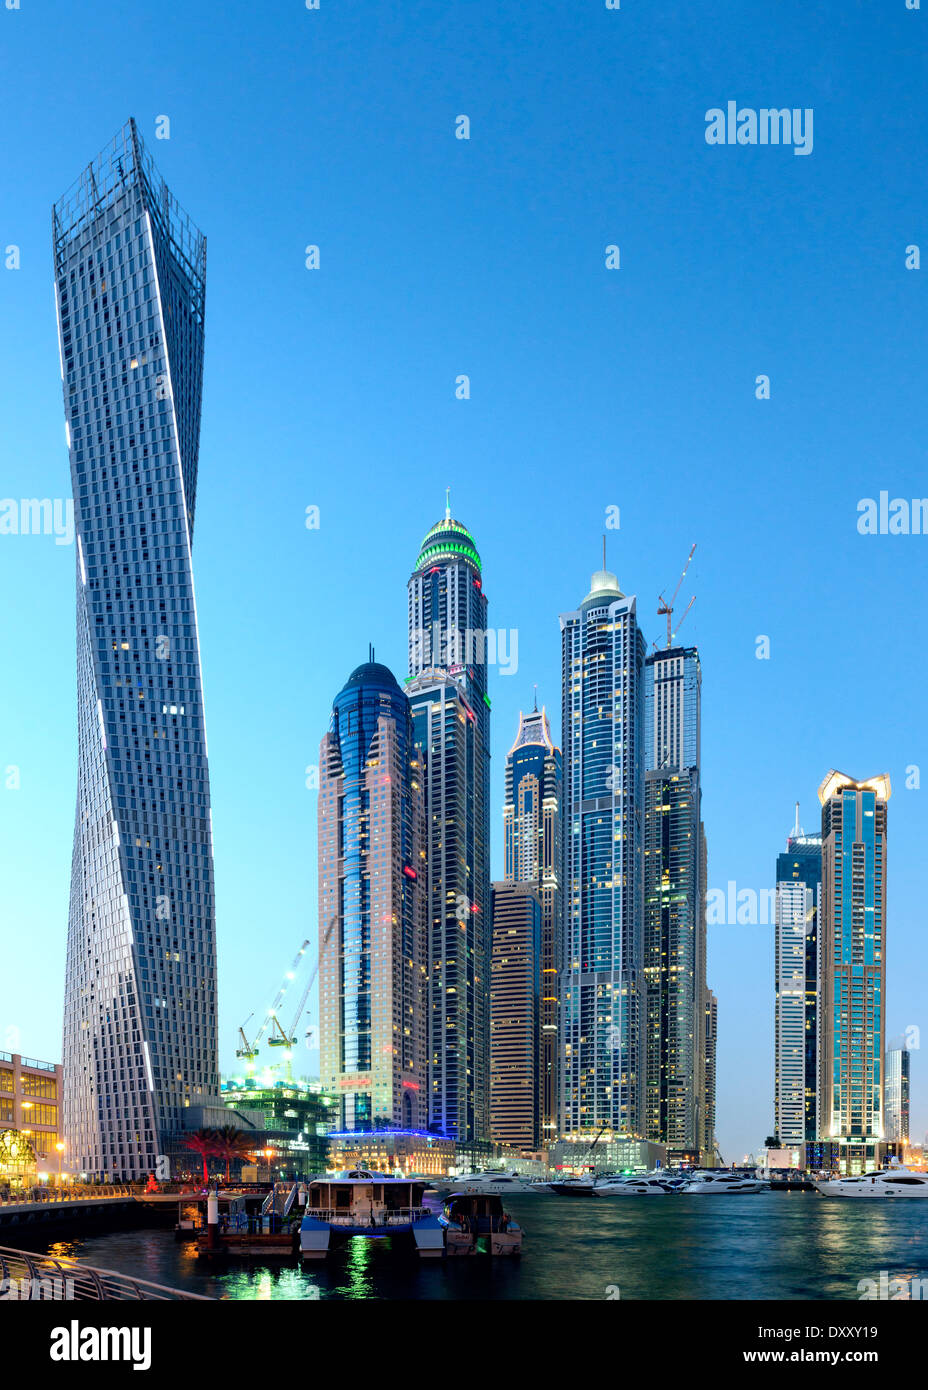 Crepuscolo vista sullo skyline di grattacieli moderni MArina district in Dubai Emirati Arabi Uniti Foto Stock